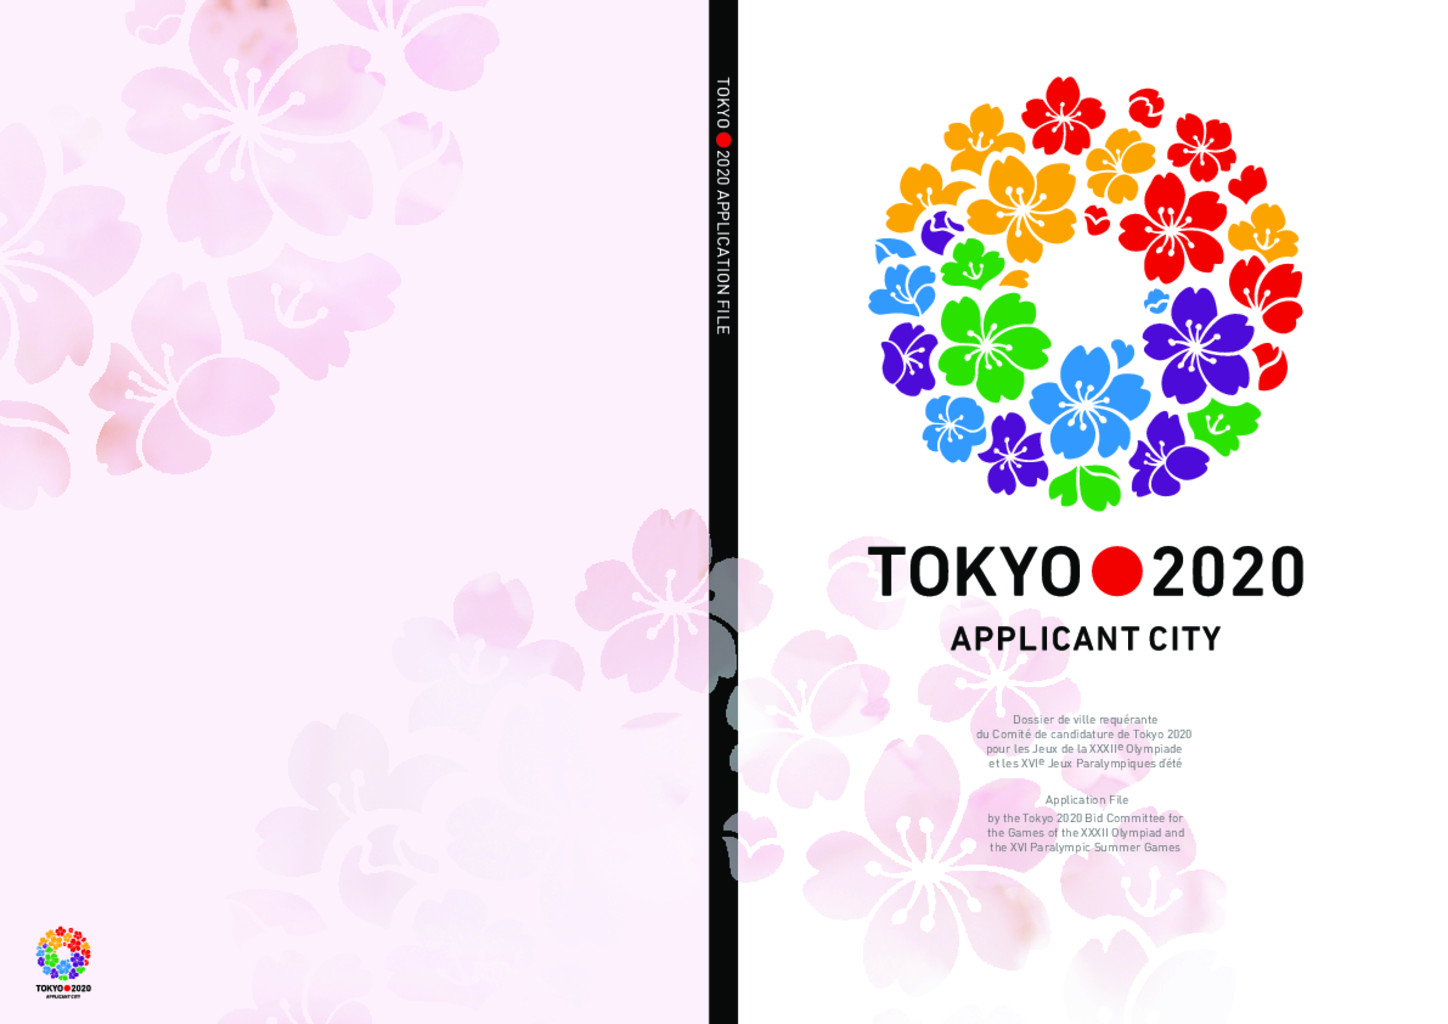 Tokyo 2020 applicant City : dossier de la ville requérante du Comité de candidature de Tokyo 2020 pour les Jeux de la XXXIIe Olympiade et les XVIe Jeux paralympiques d'été = application file by the Tokyo 2020 Bid Committee for the Games of the XXXII Olympiad and the XVI Paralympic Summer Games / Tokyo 2020 Olympic Games Bid Committee | Tokyo 2020 Olympic Games Bid Committee